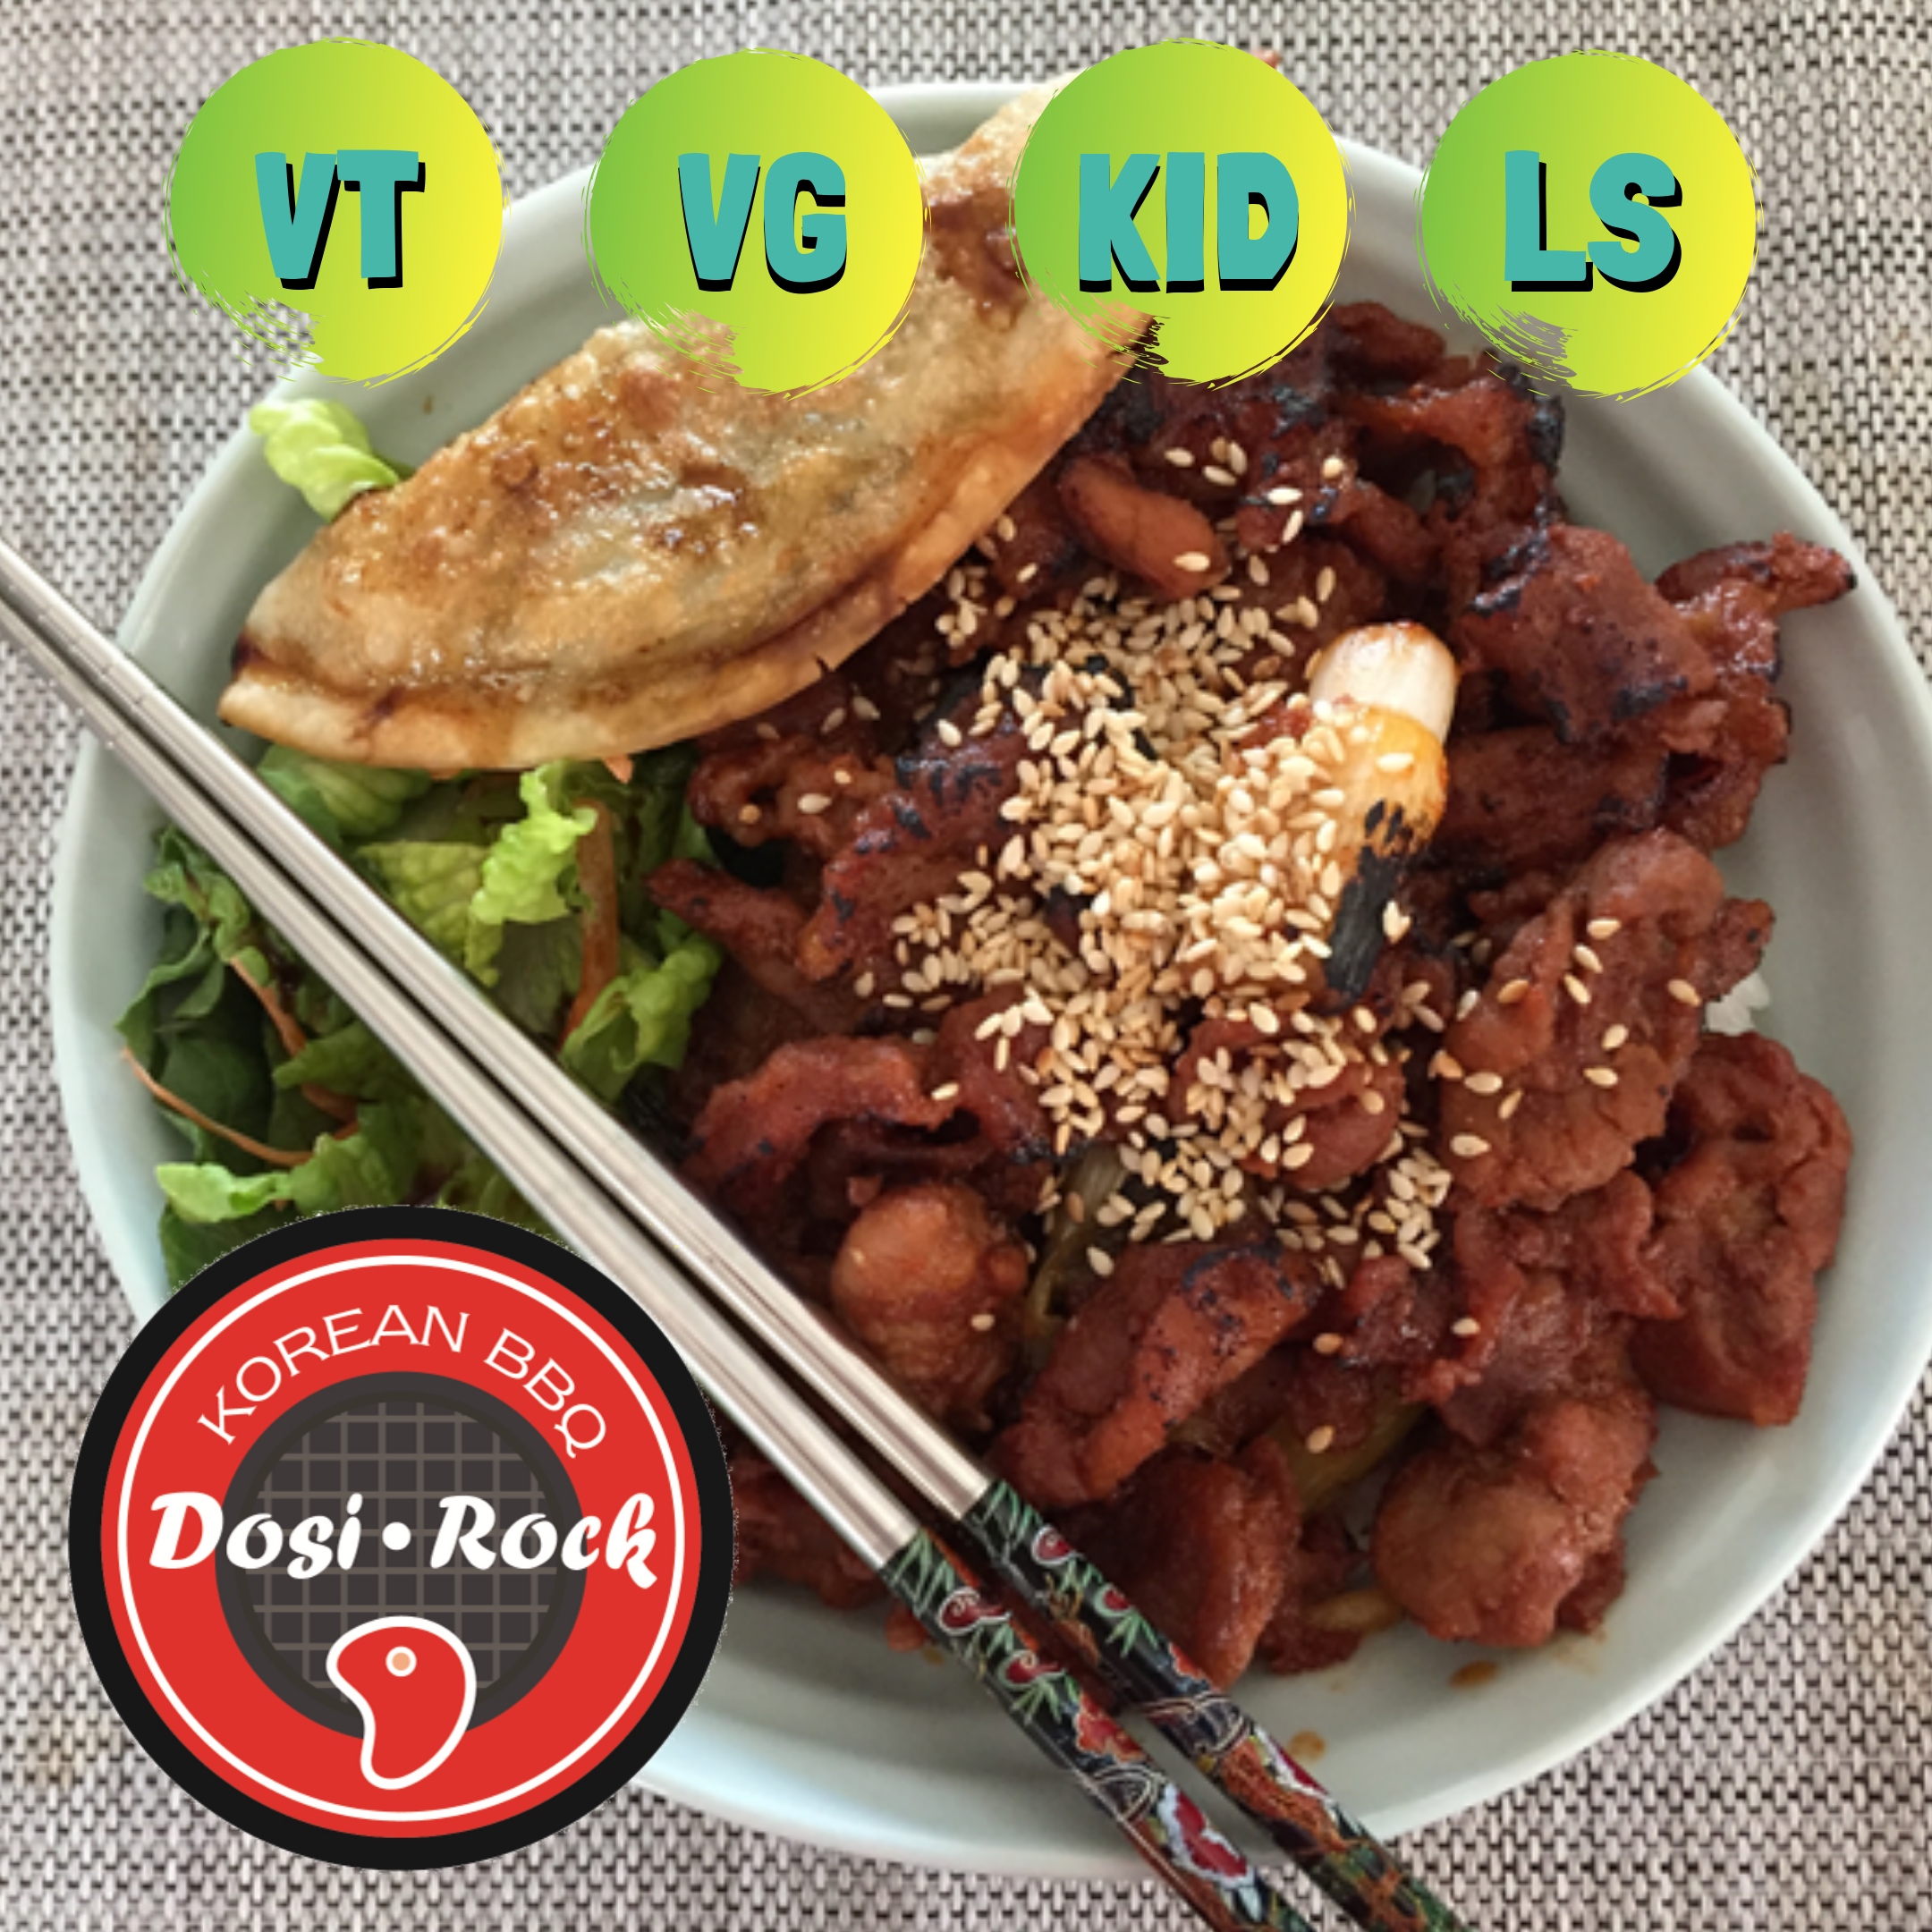 dosi rock - Korean BBQ